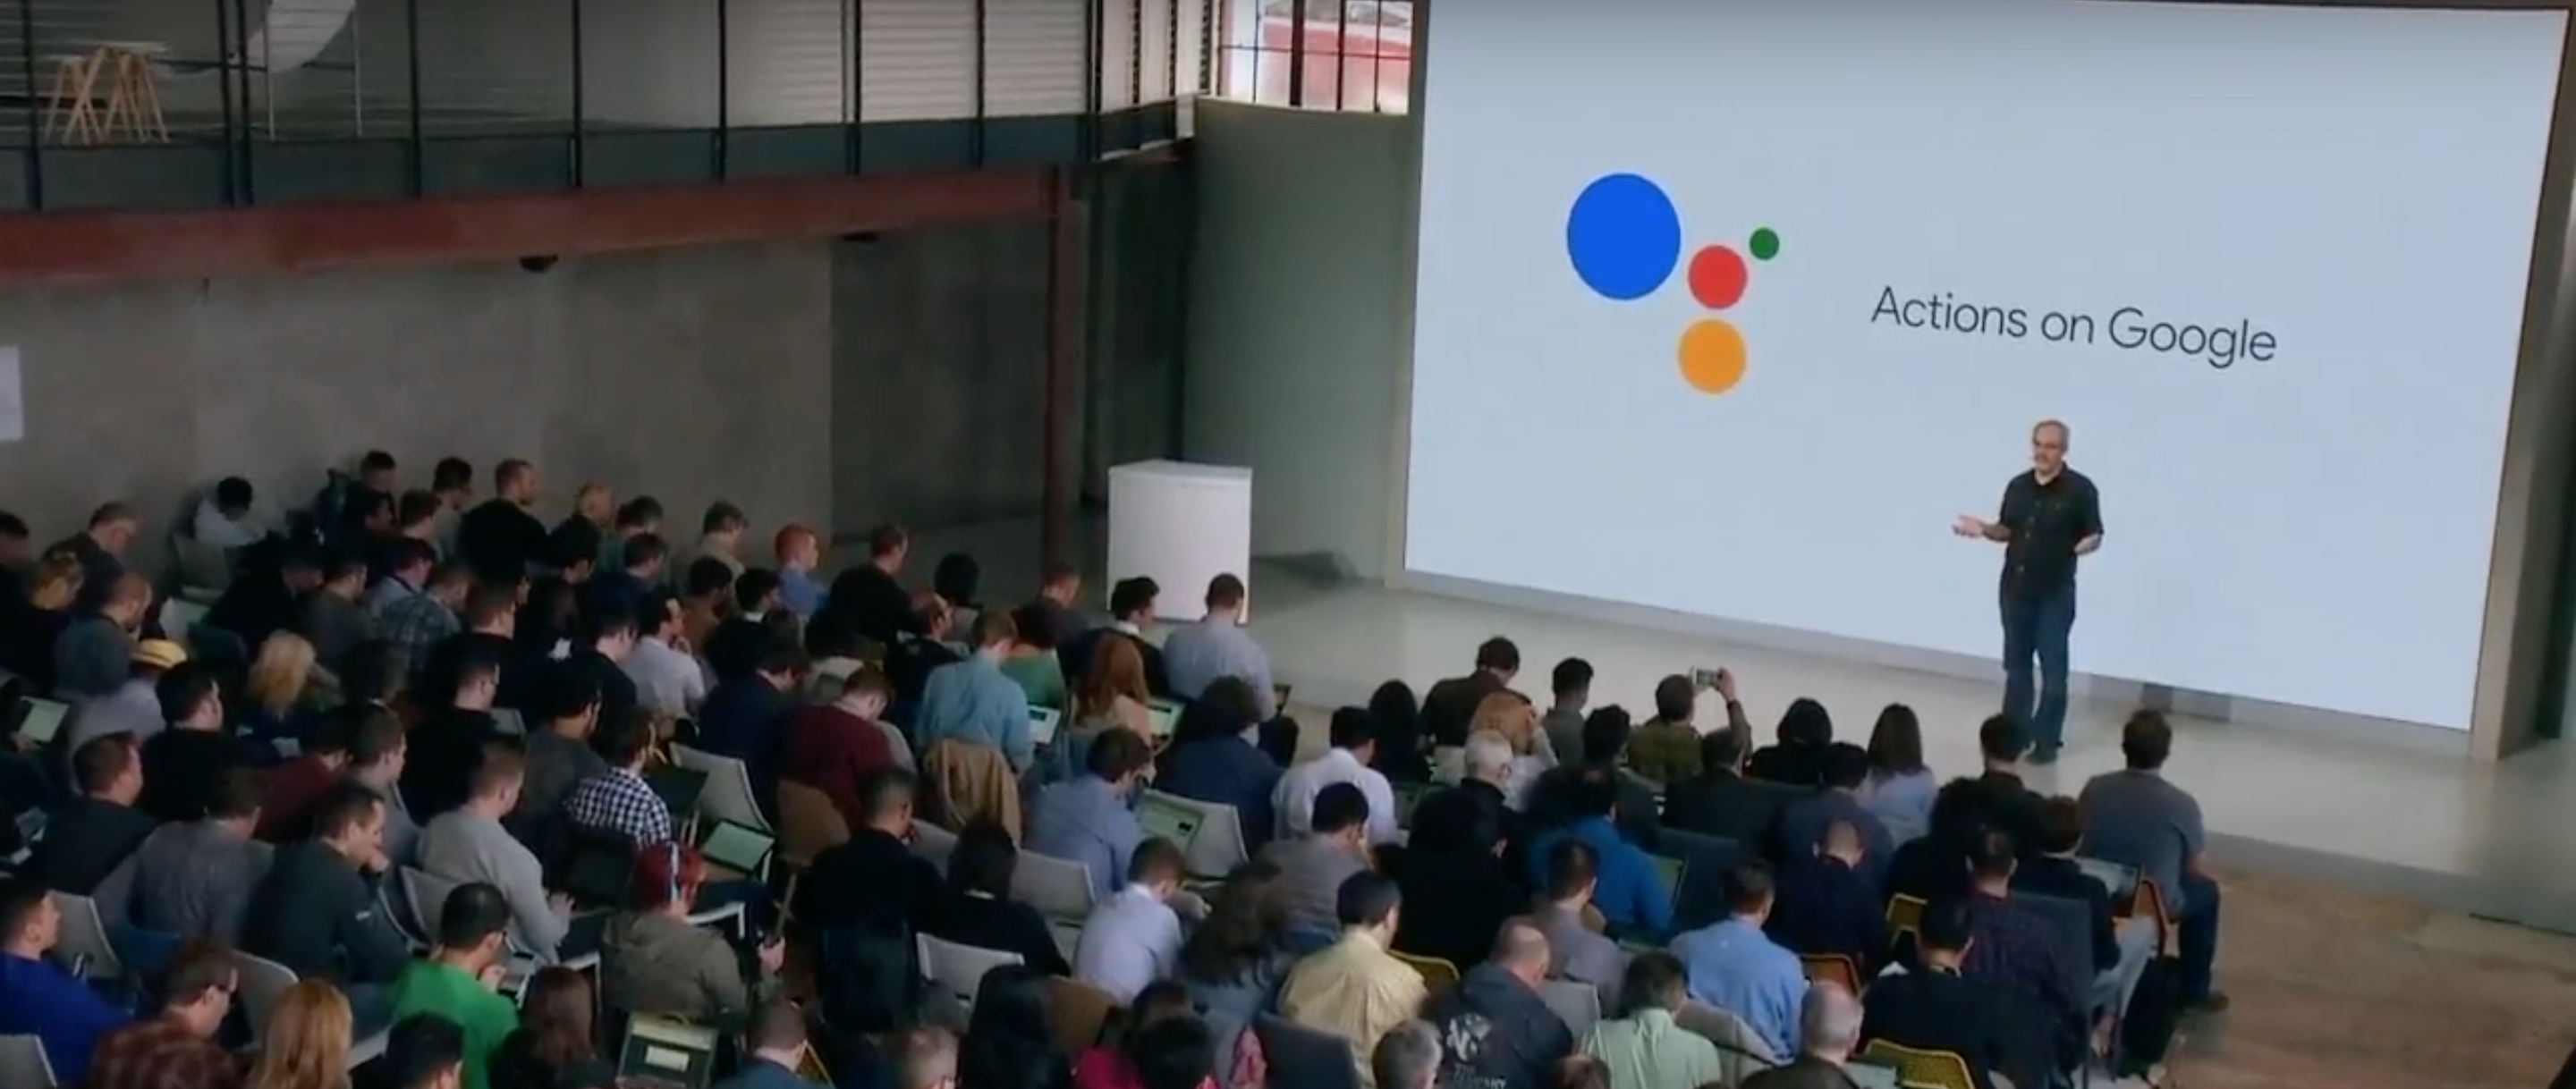 Google Assistant Actions on Google